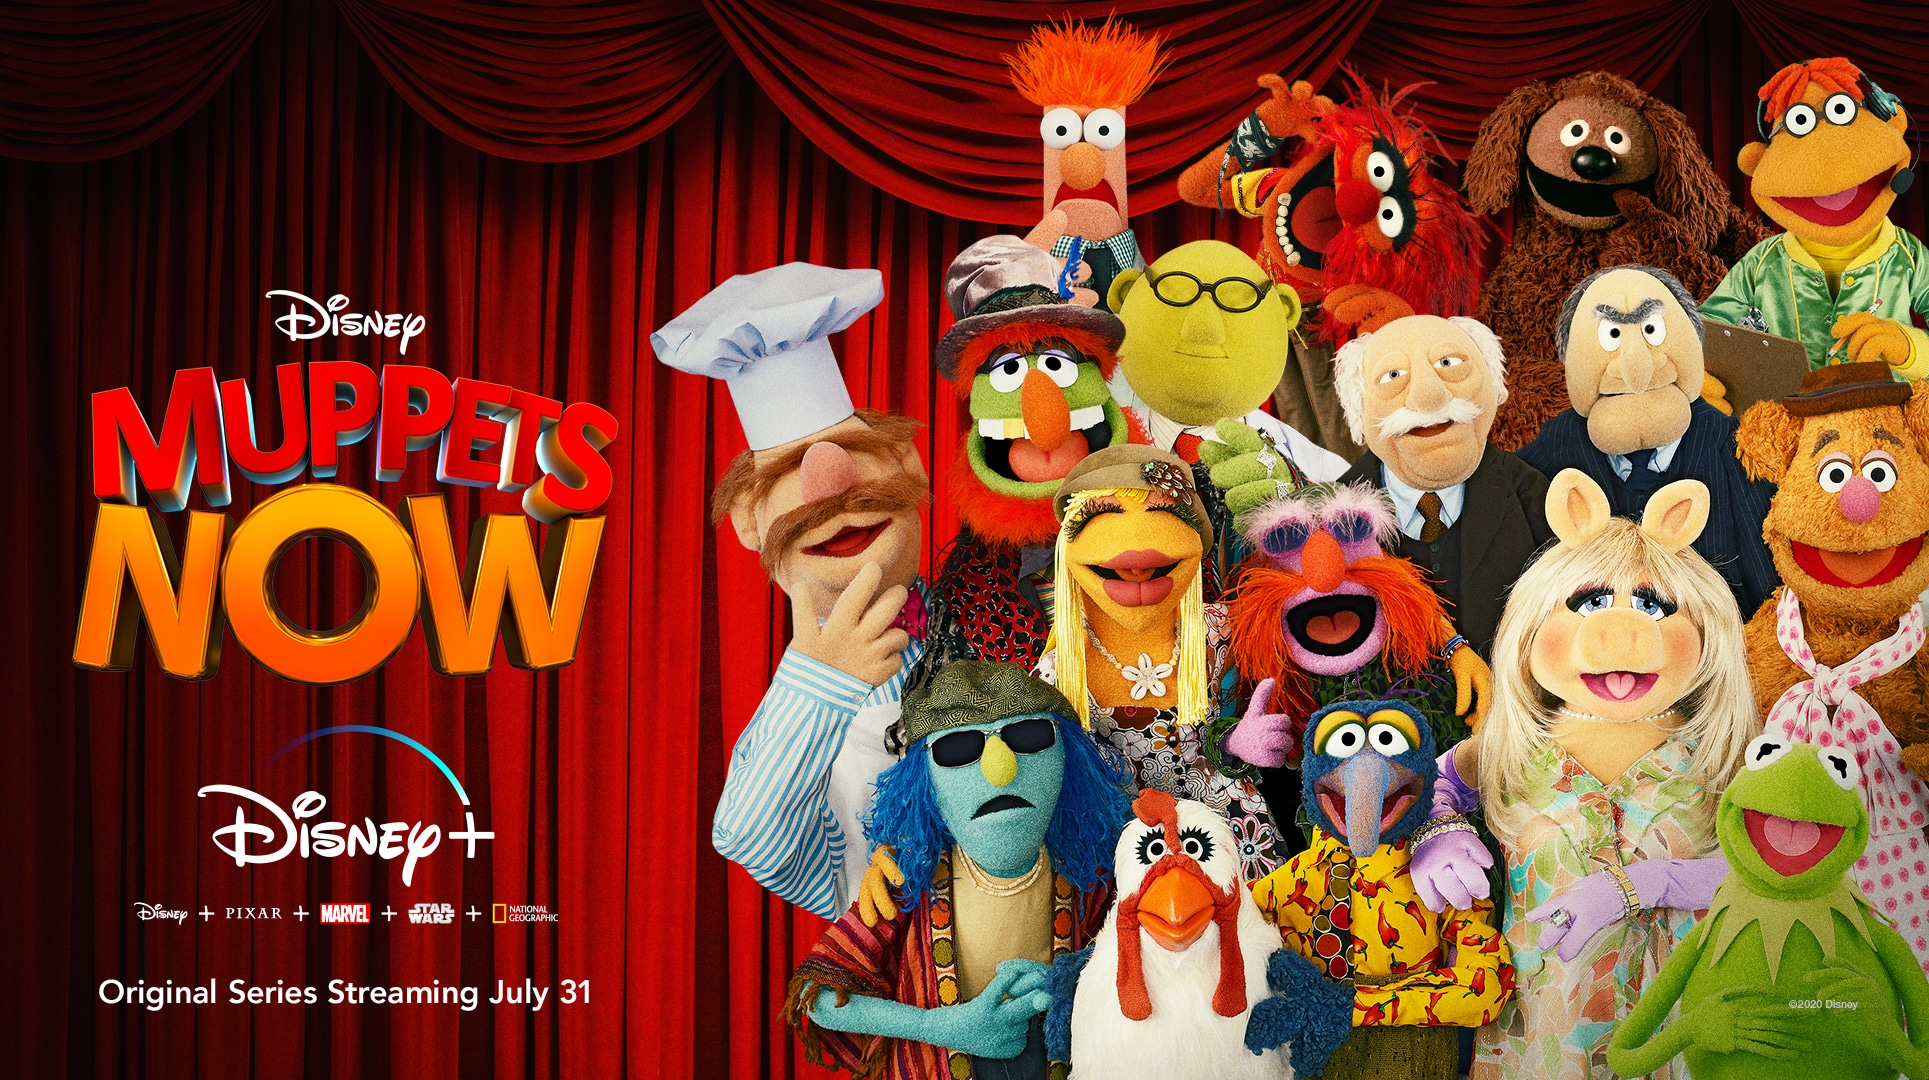 Muppets NOW! Brings the Charm and Zaniness of Muppets to Disney+